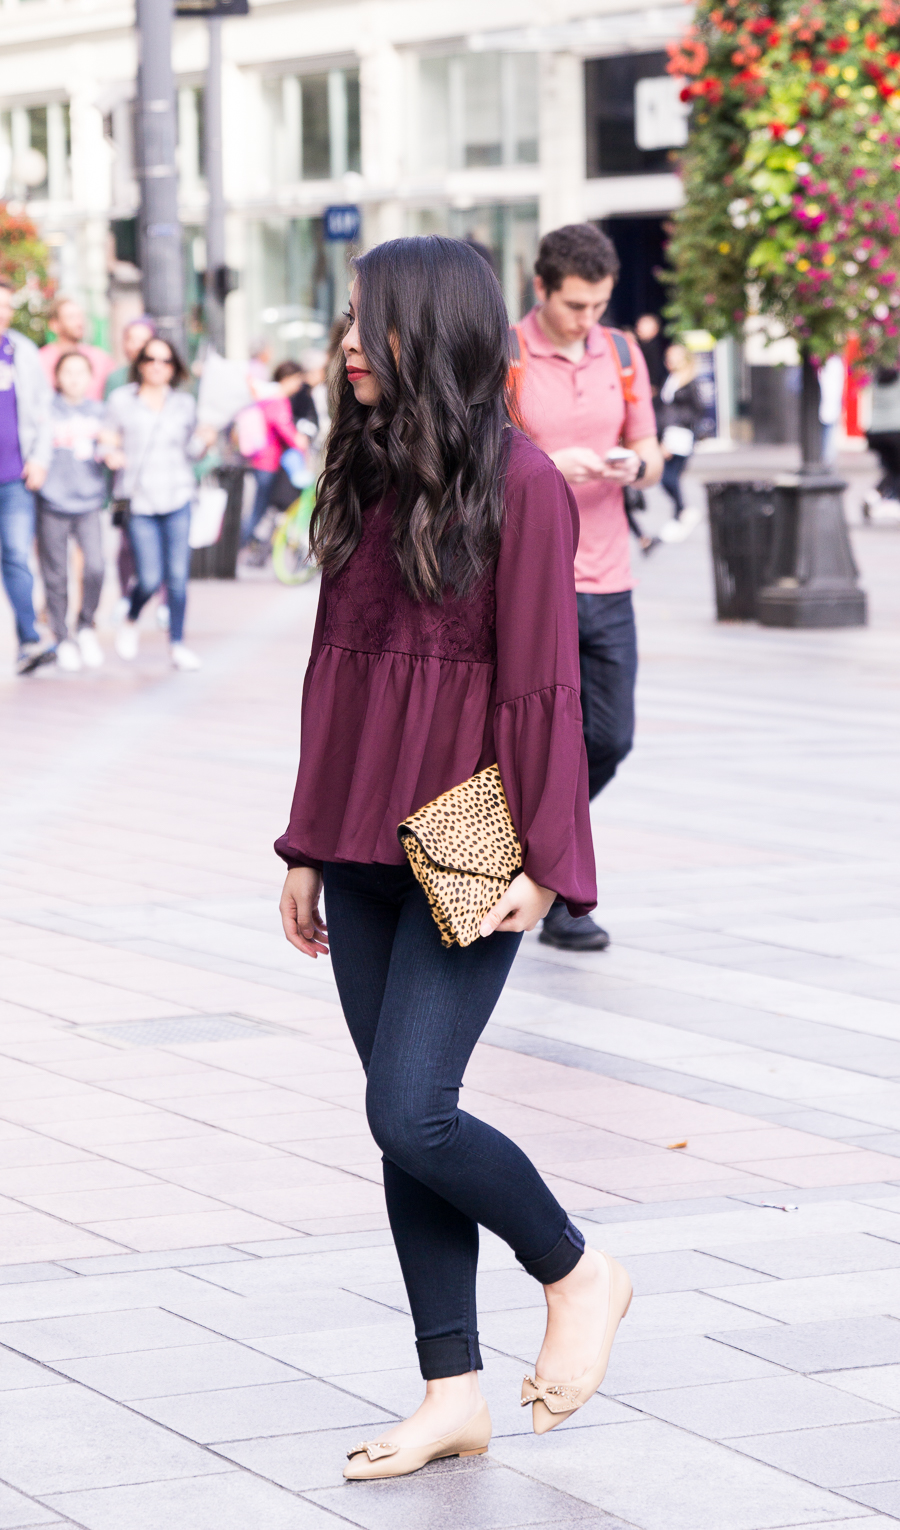 Burgundy top, bow shoes, casual style, Seattle fashion blogger